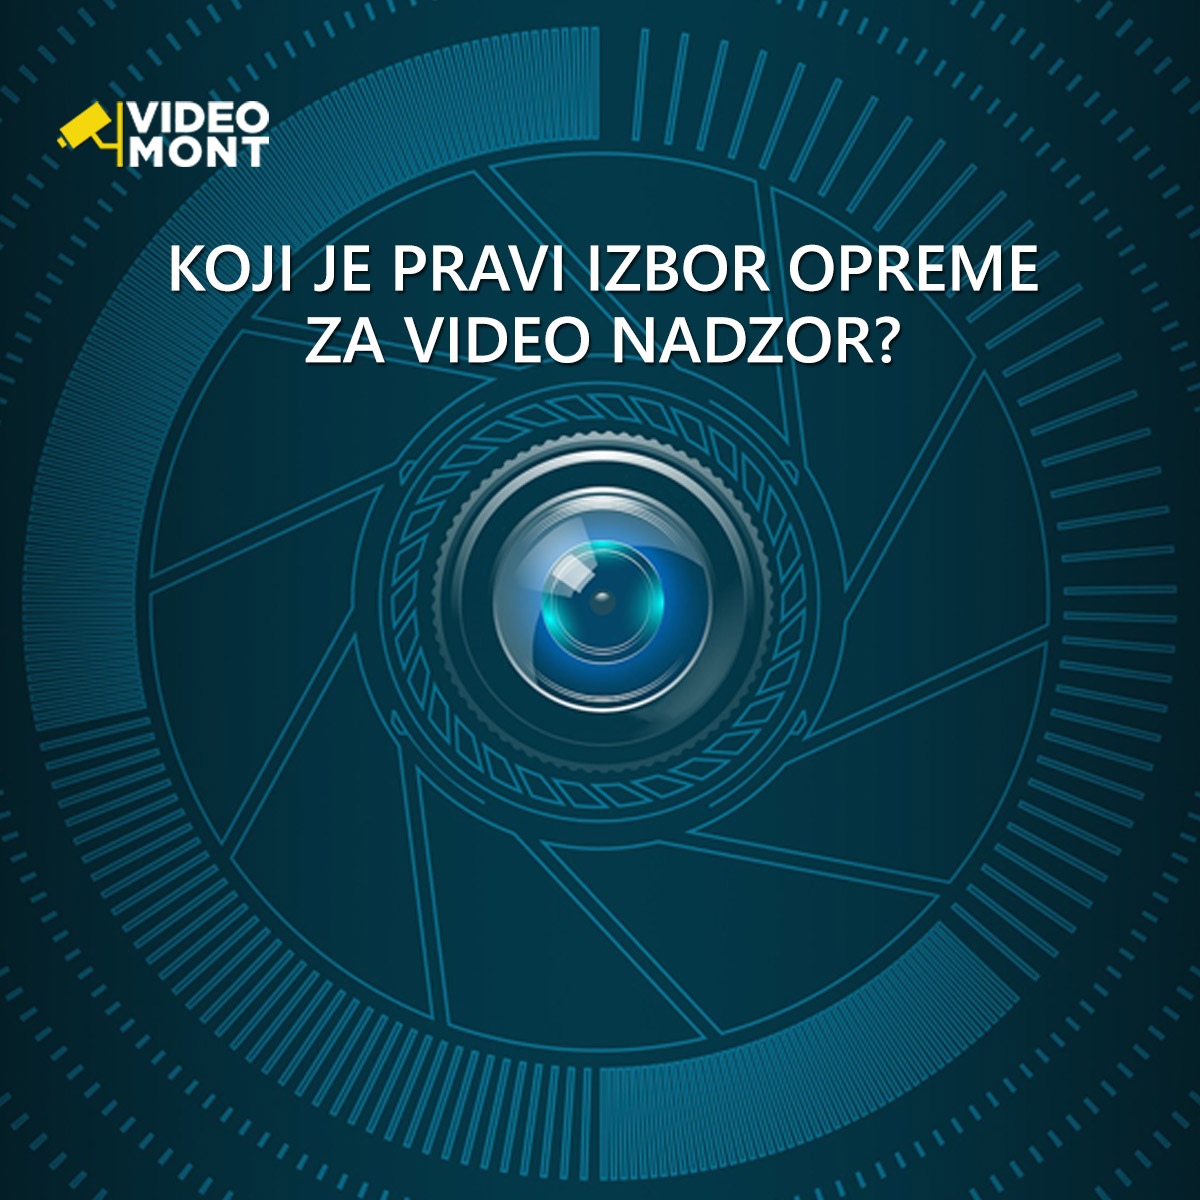 Izbor opreme za video nadzor